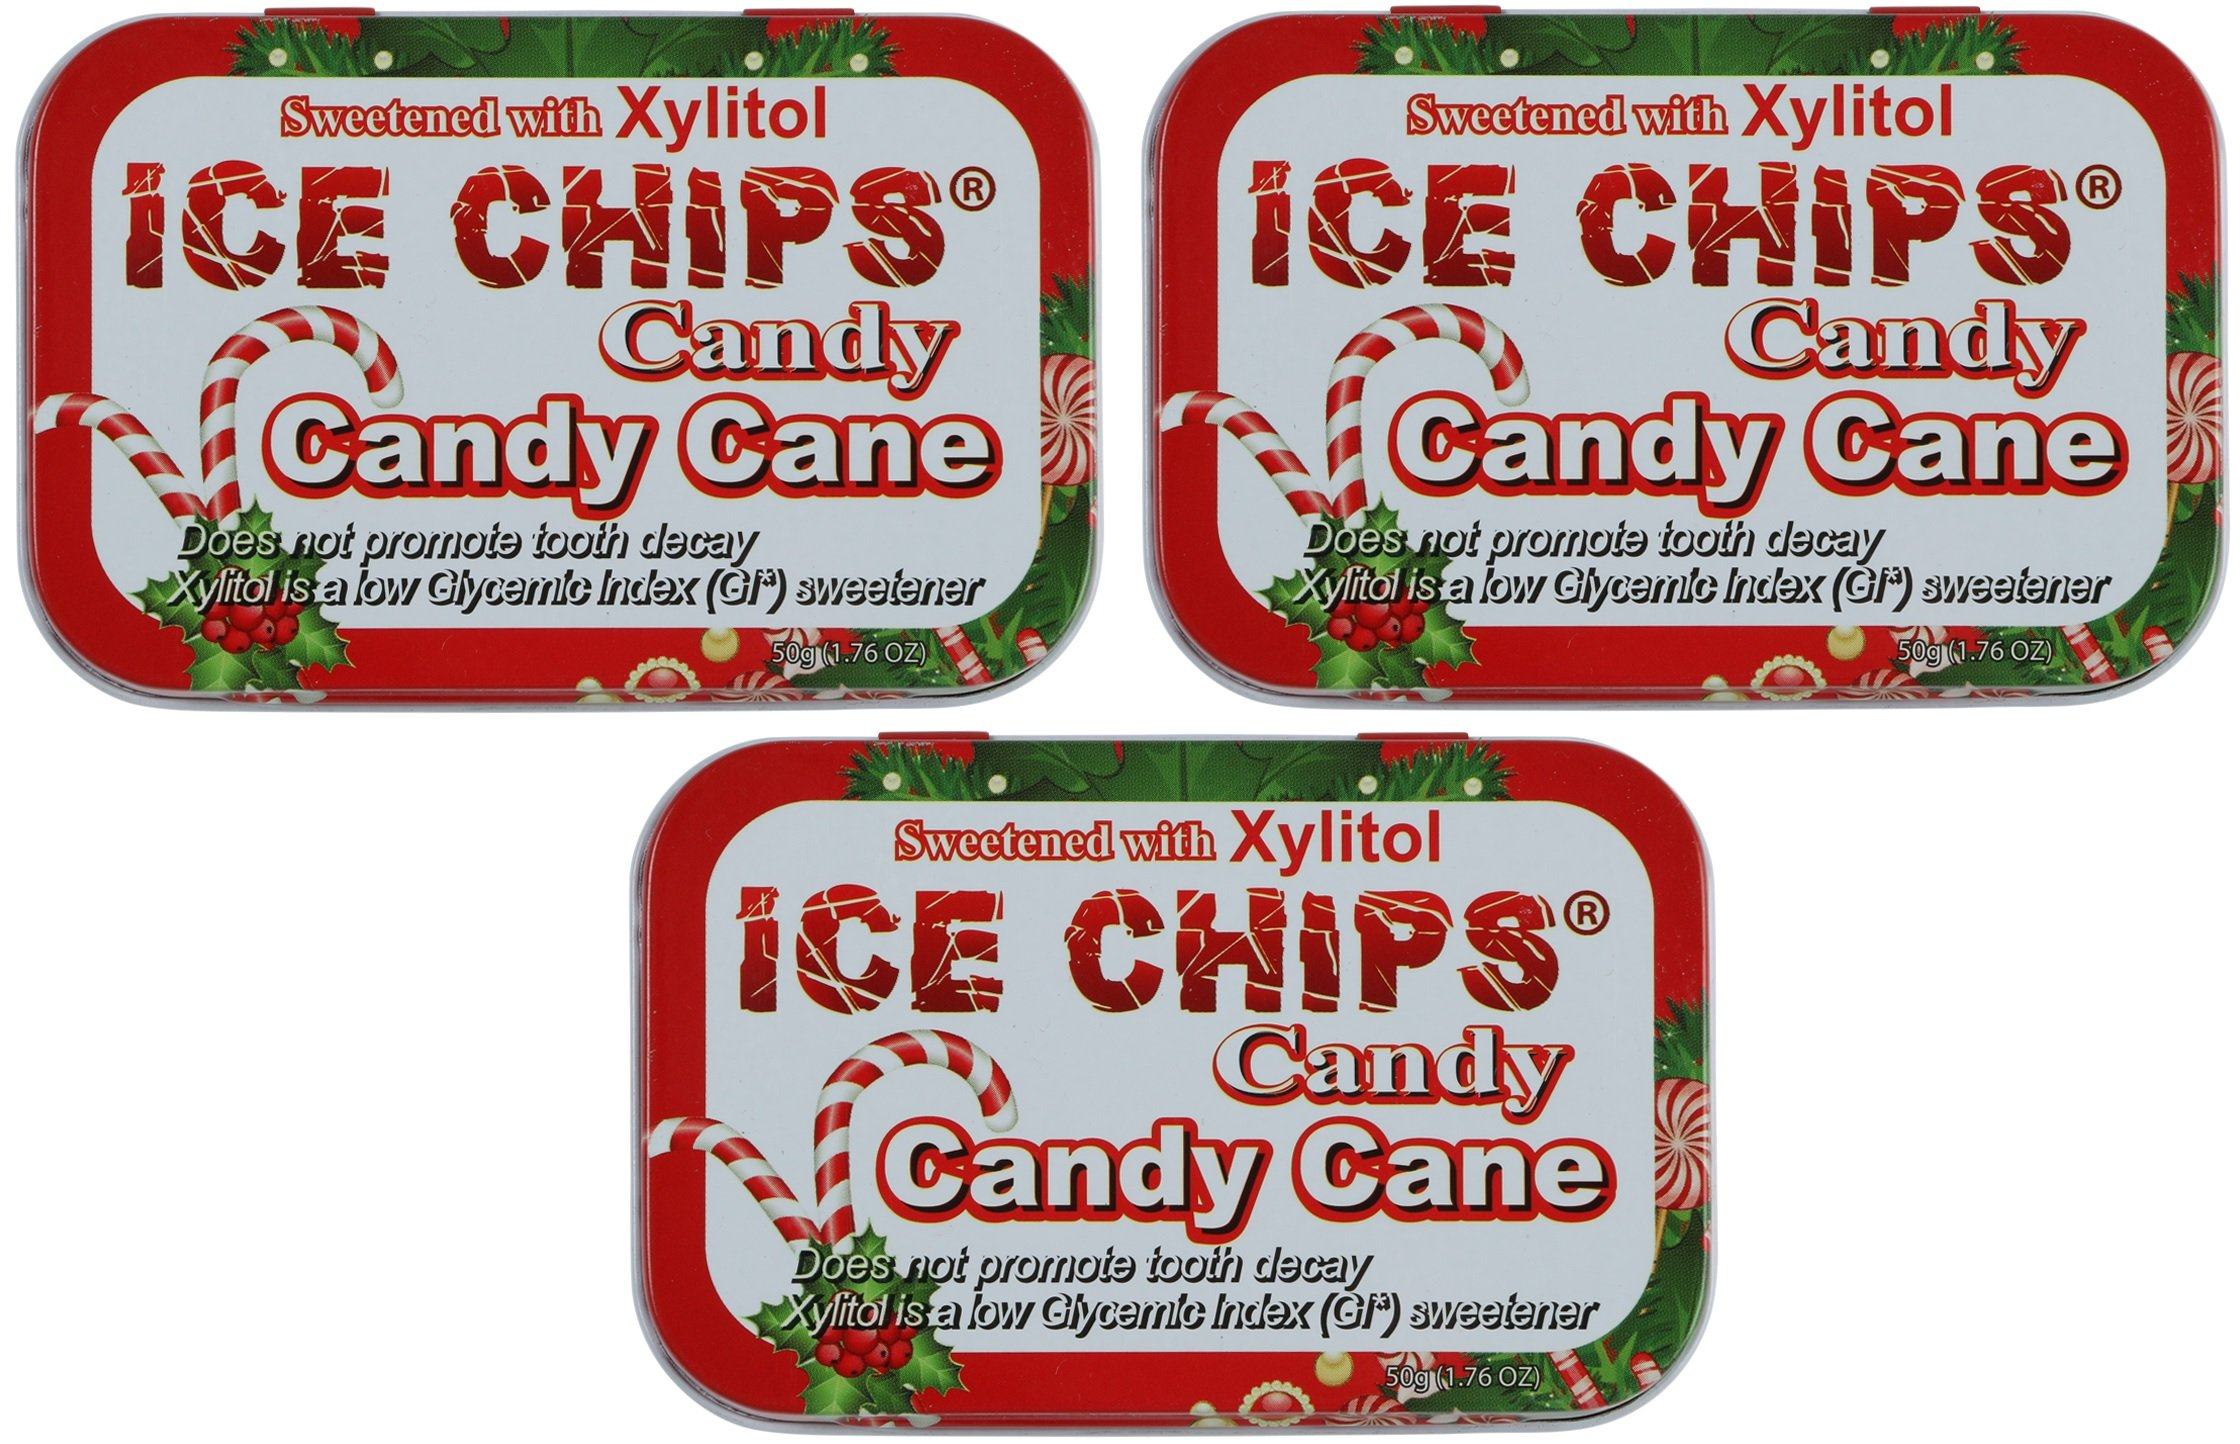 ICE CHIPS Xylitol Candy Tins (Candy Cane, 3 Pack)